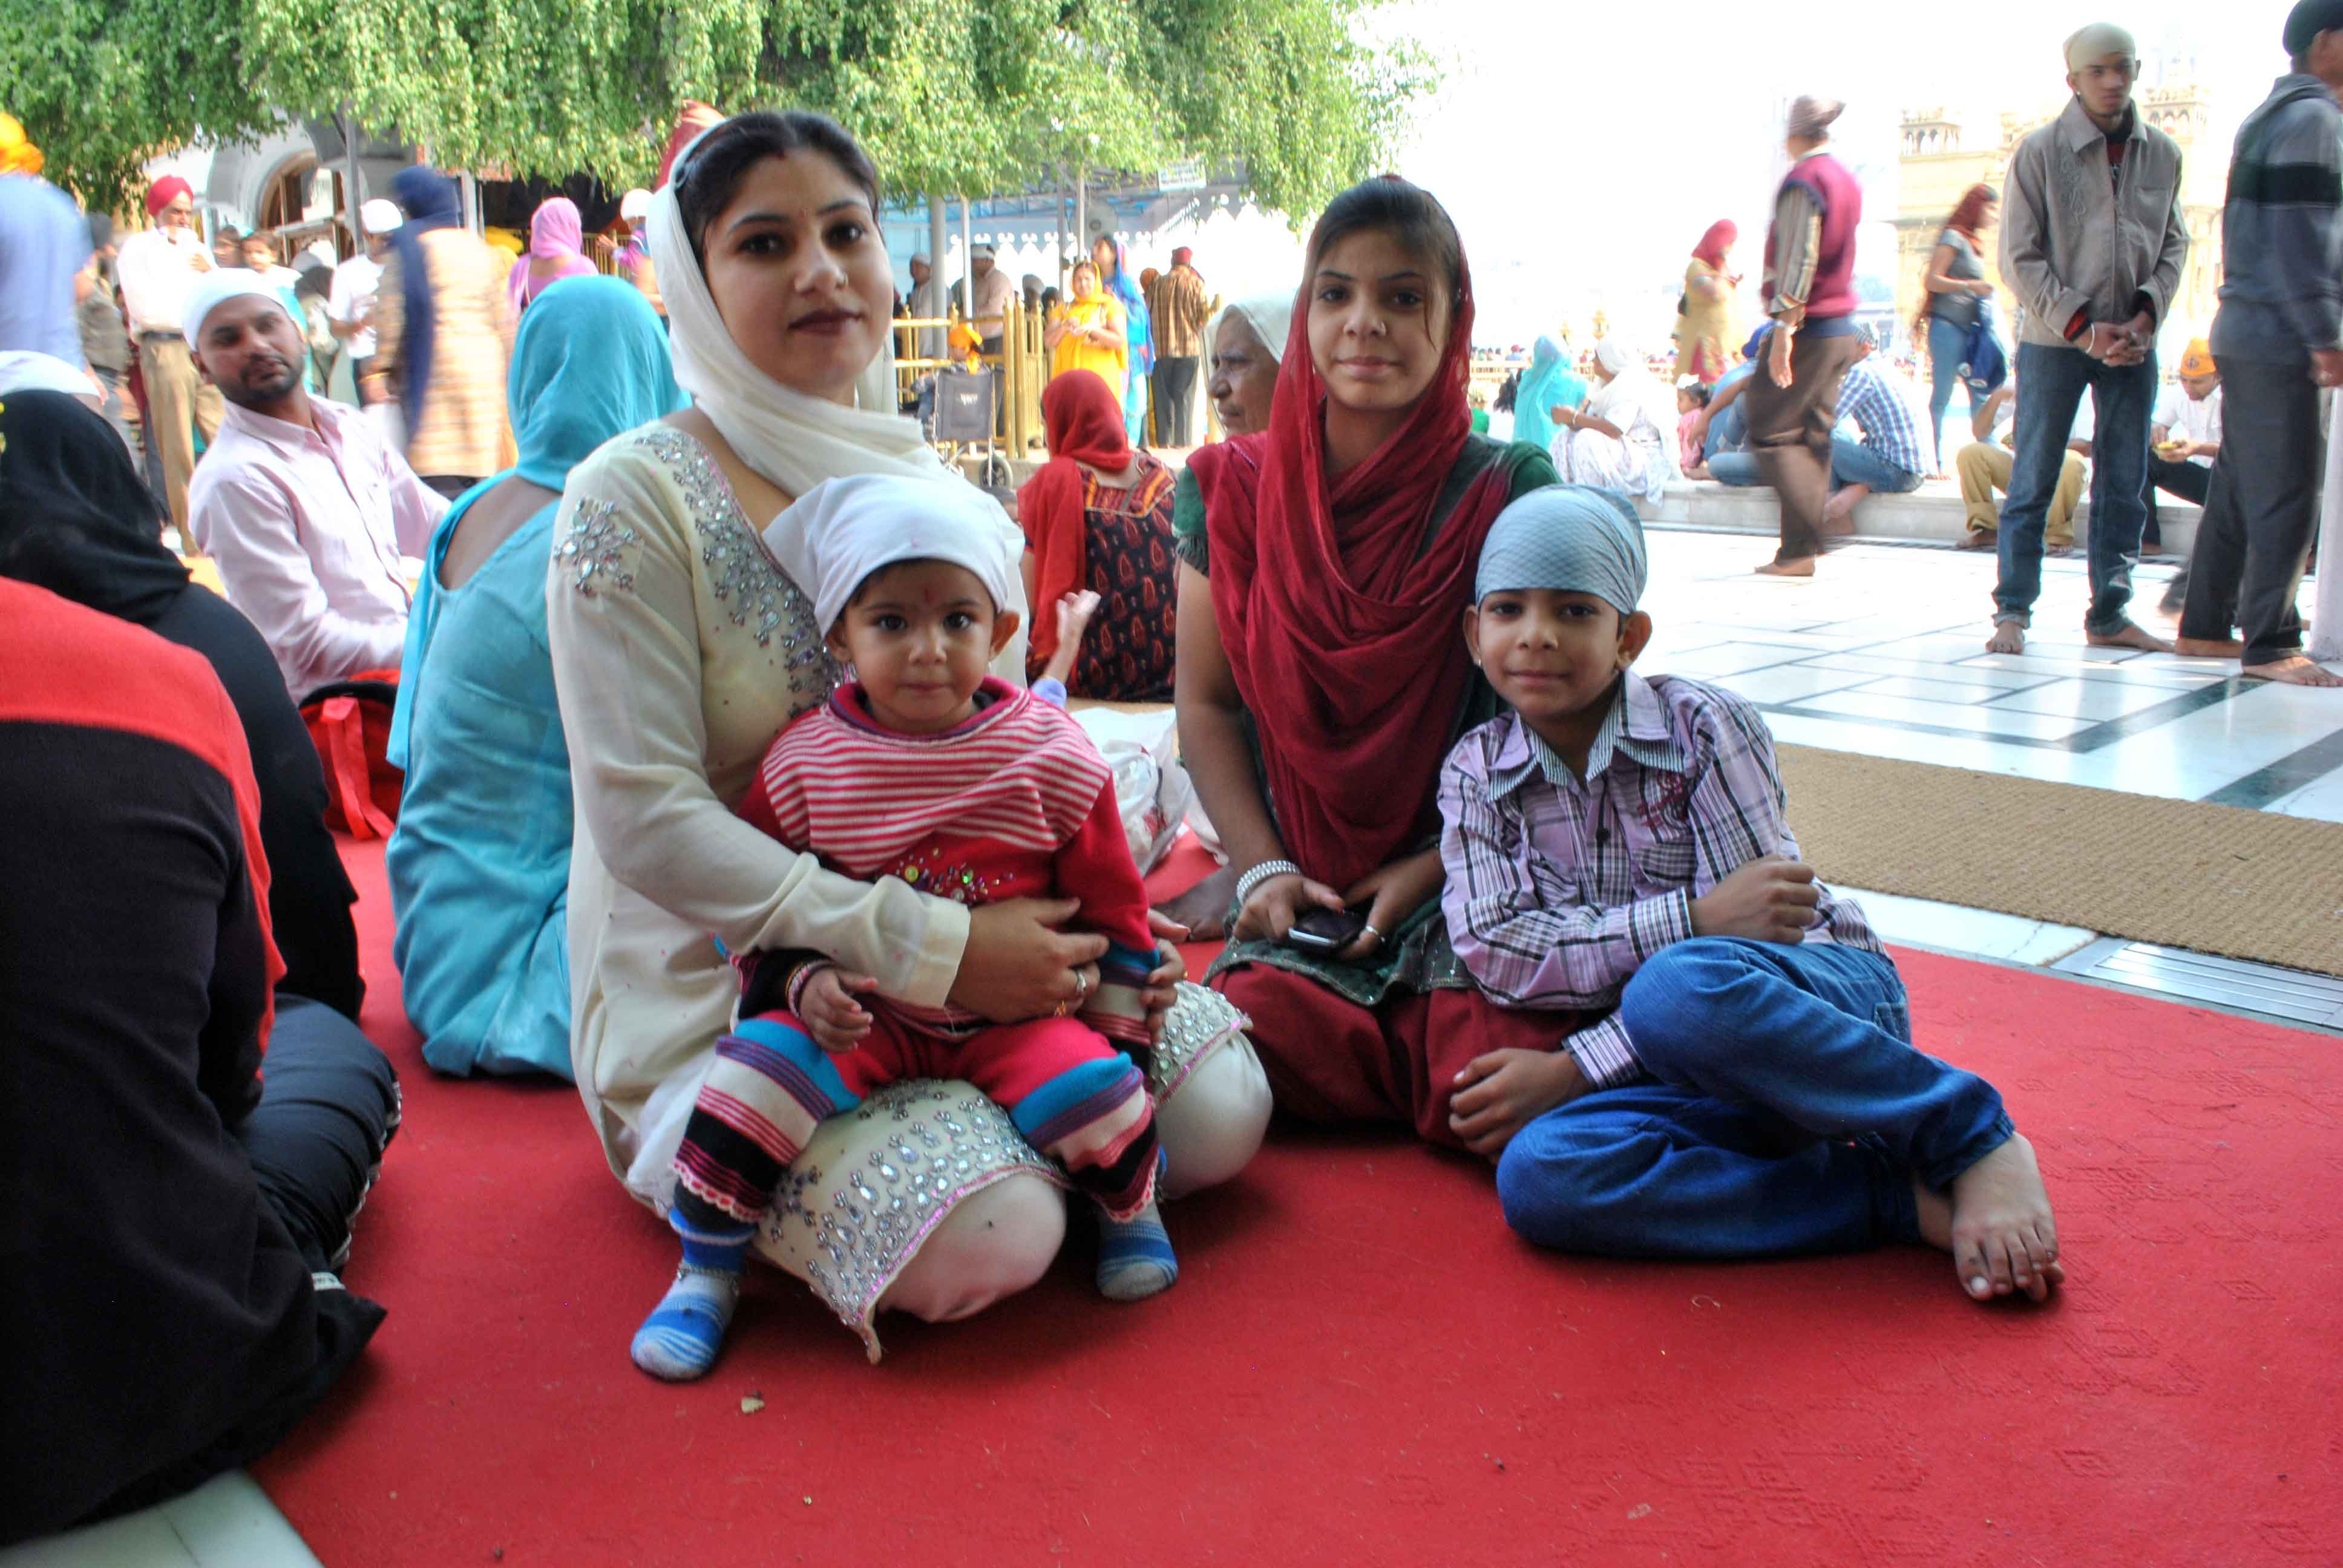 Mothers with children in the Golden temple, Amritsar